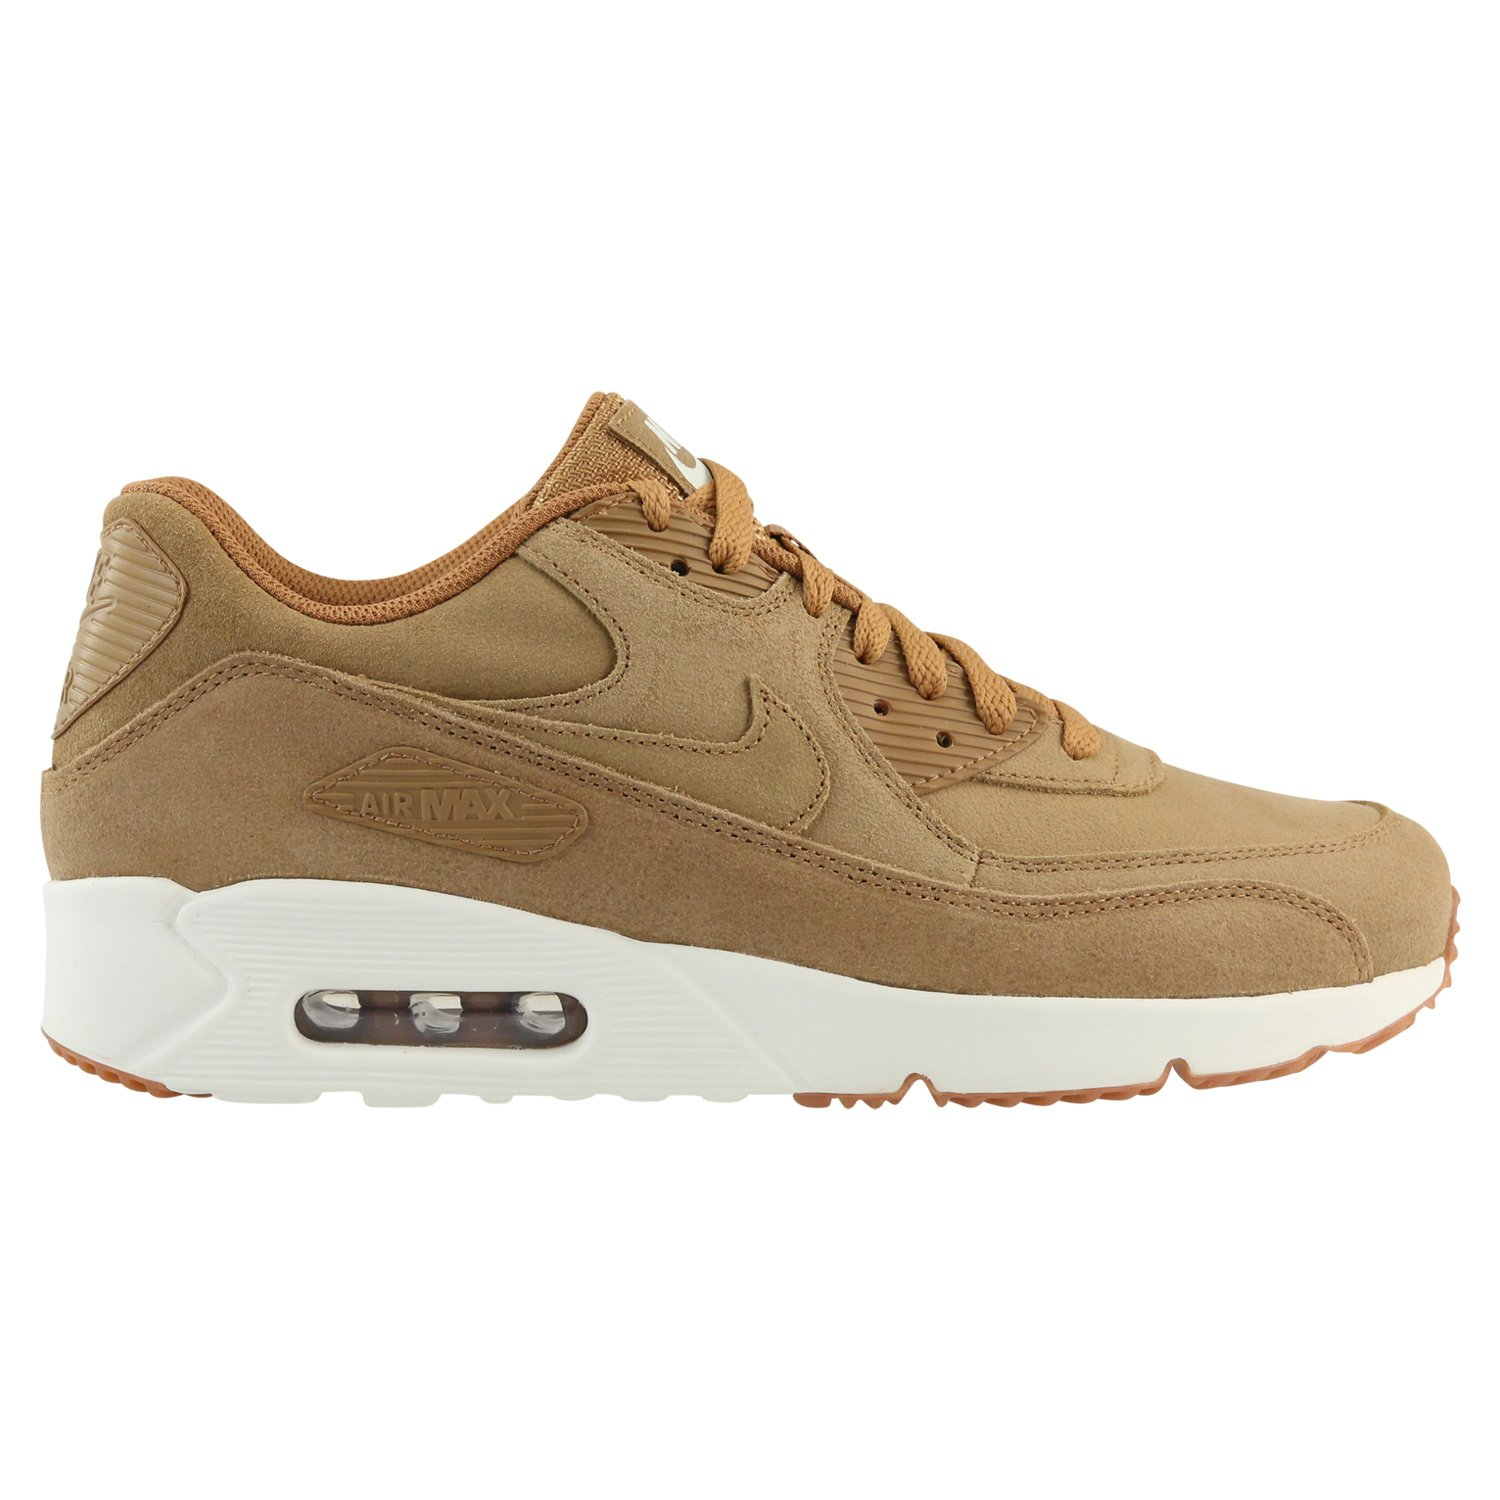 Galleon Nike Air Max 90 Ultra 2.0 Leather Running Shoe